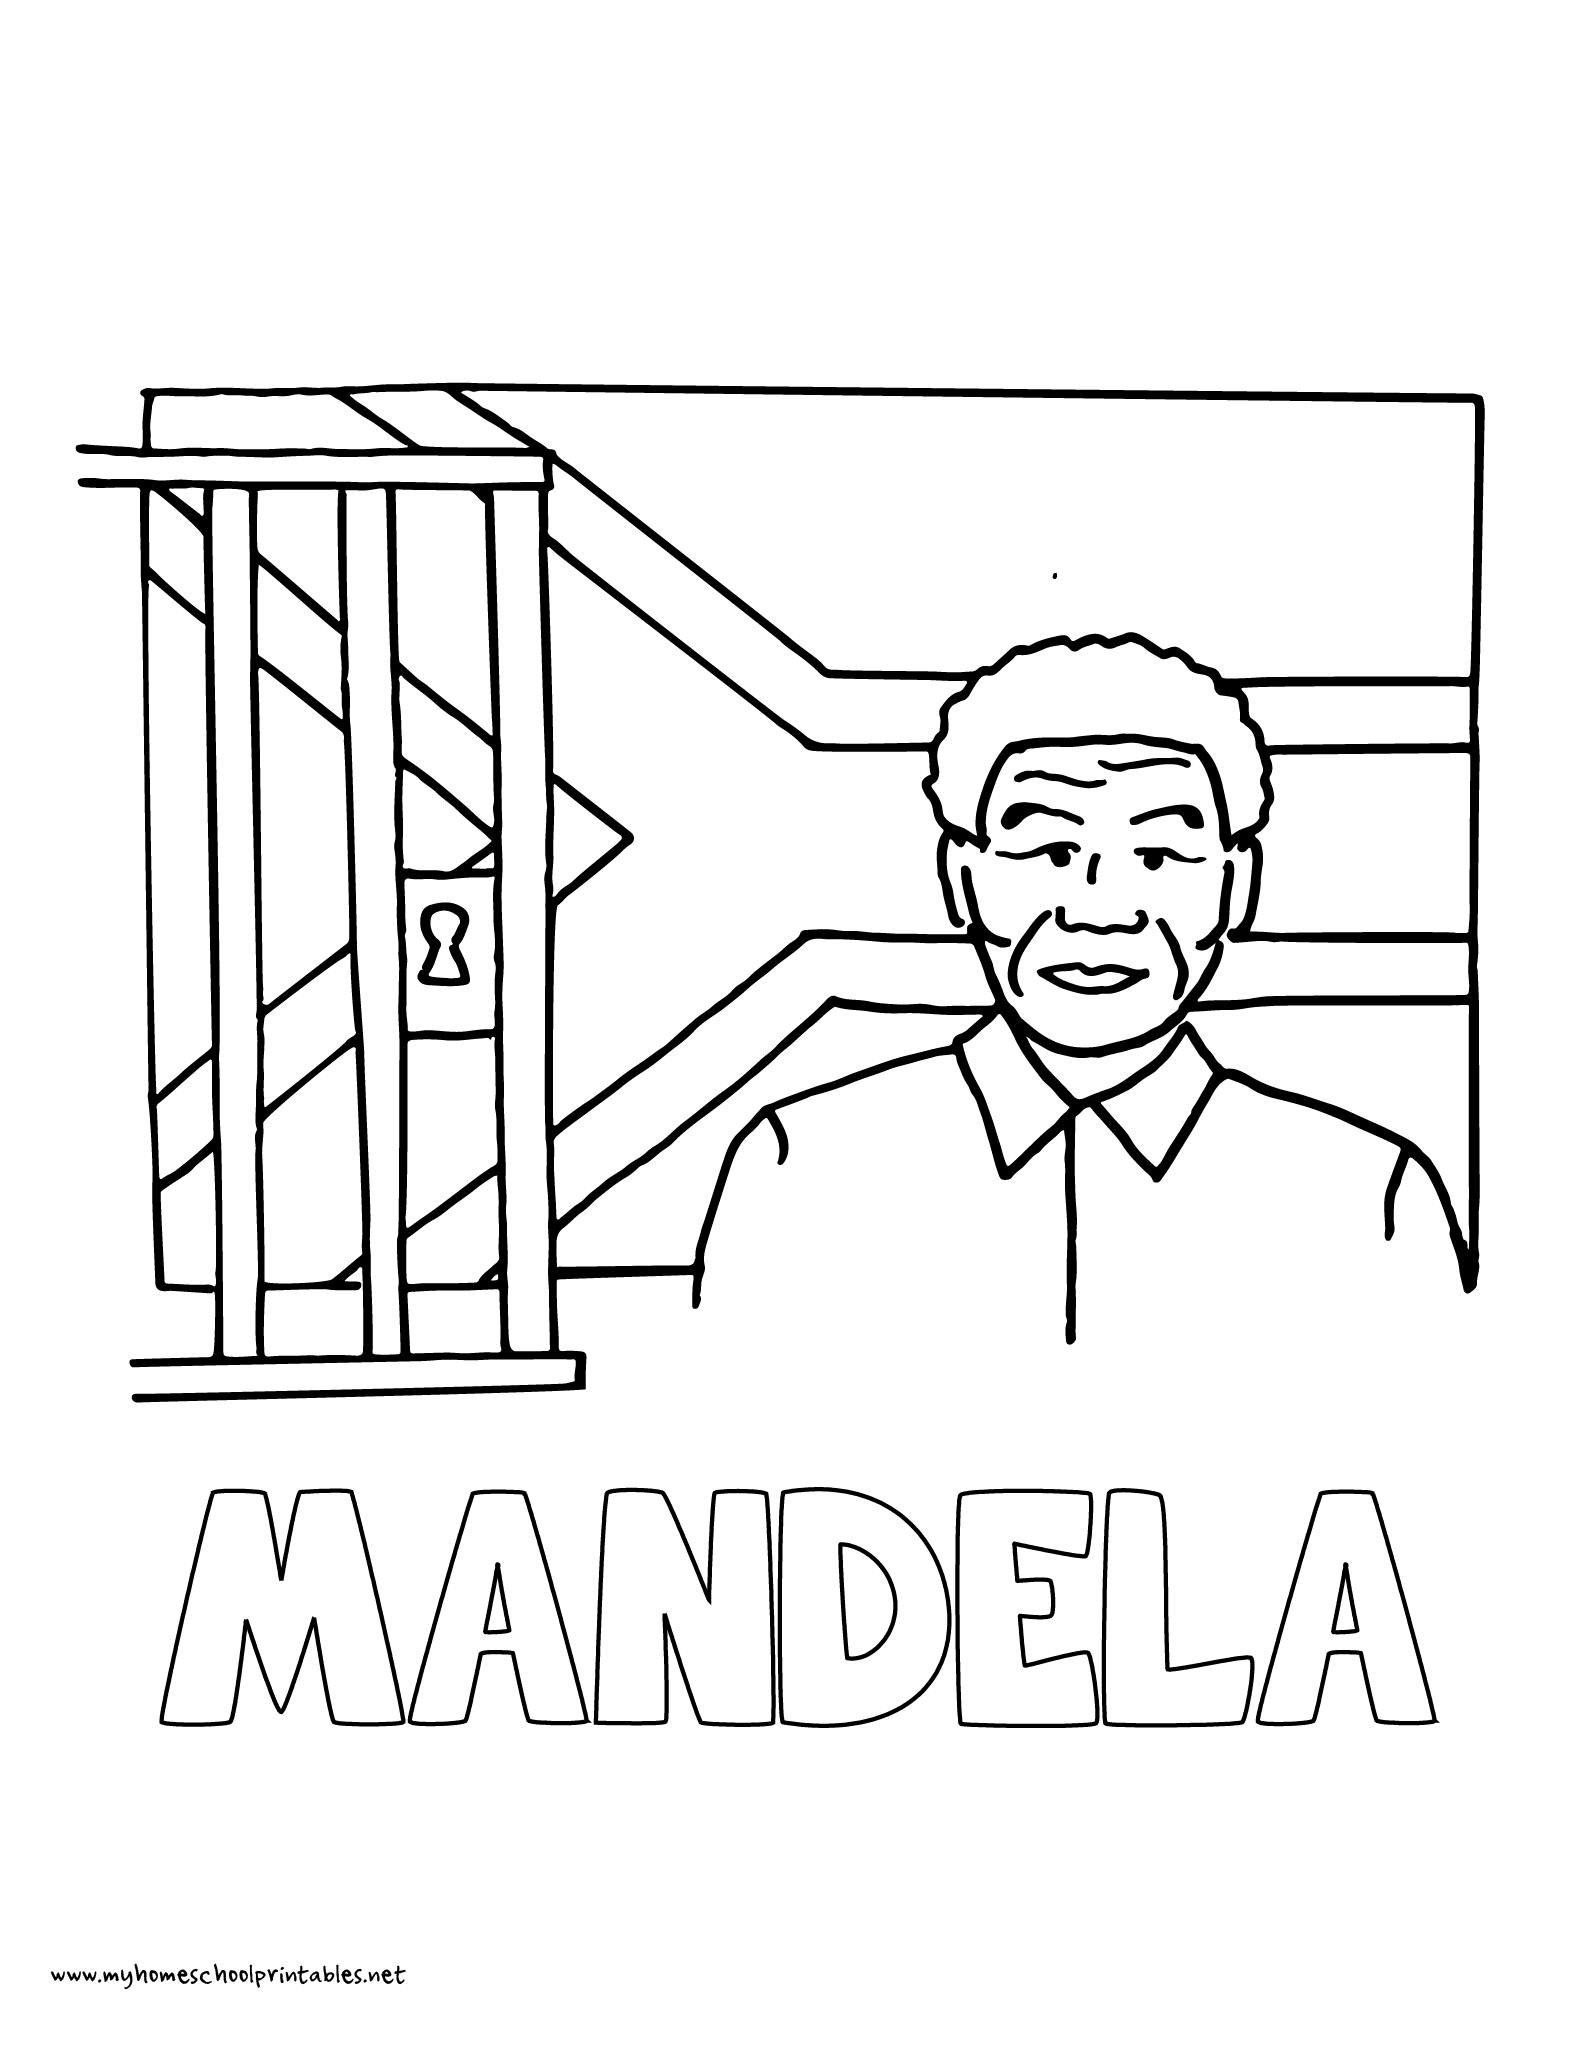 Nelson Mandela Coloring Page At Getcolorings